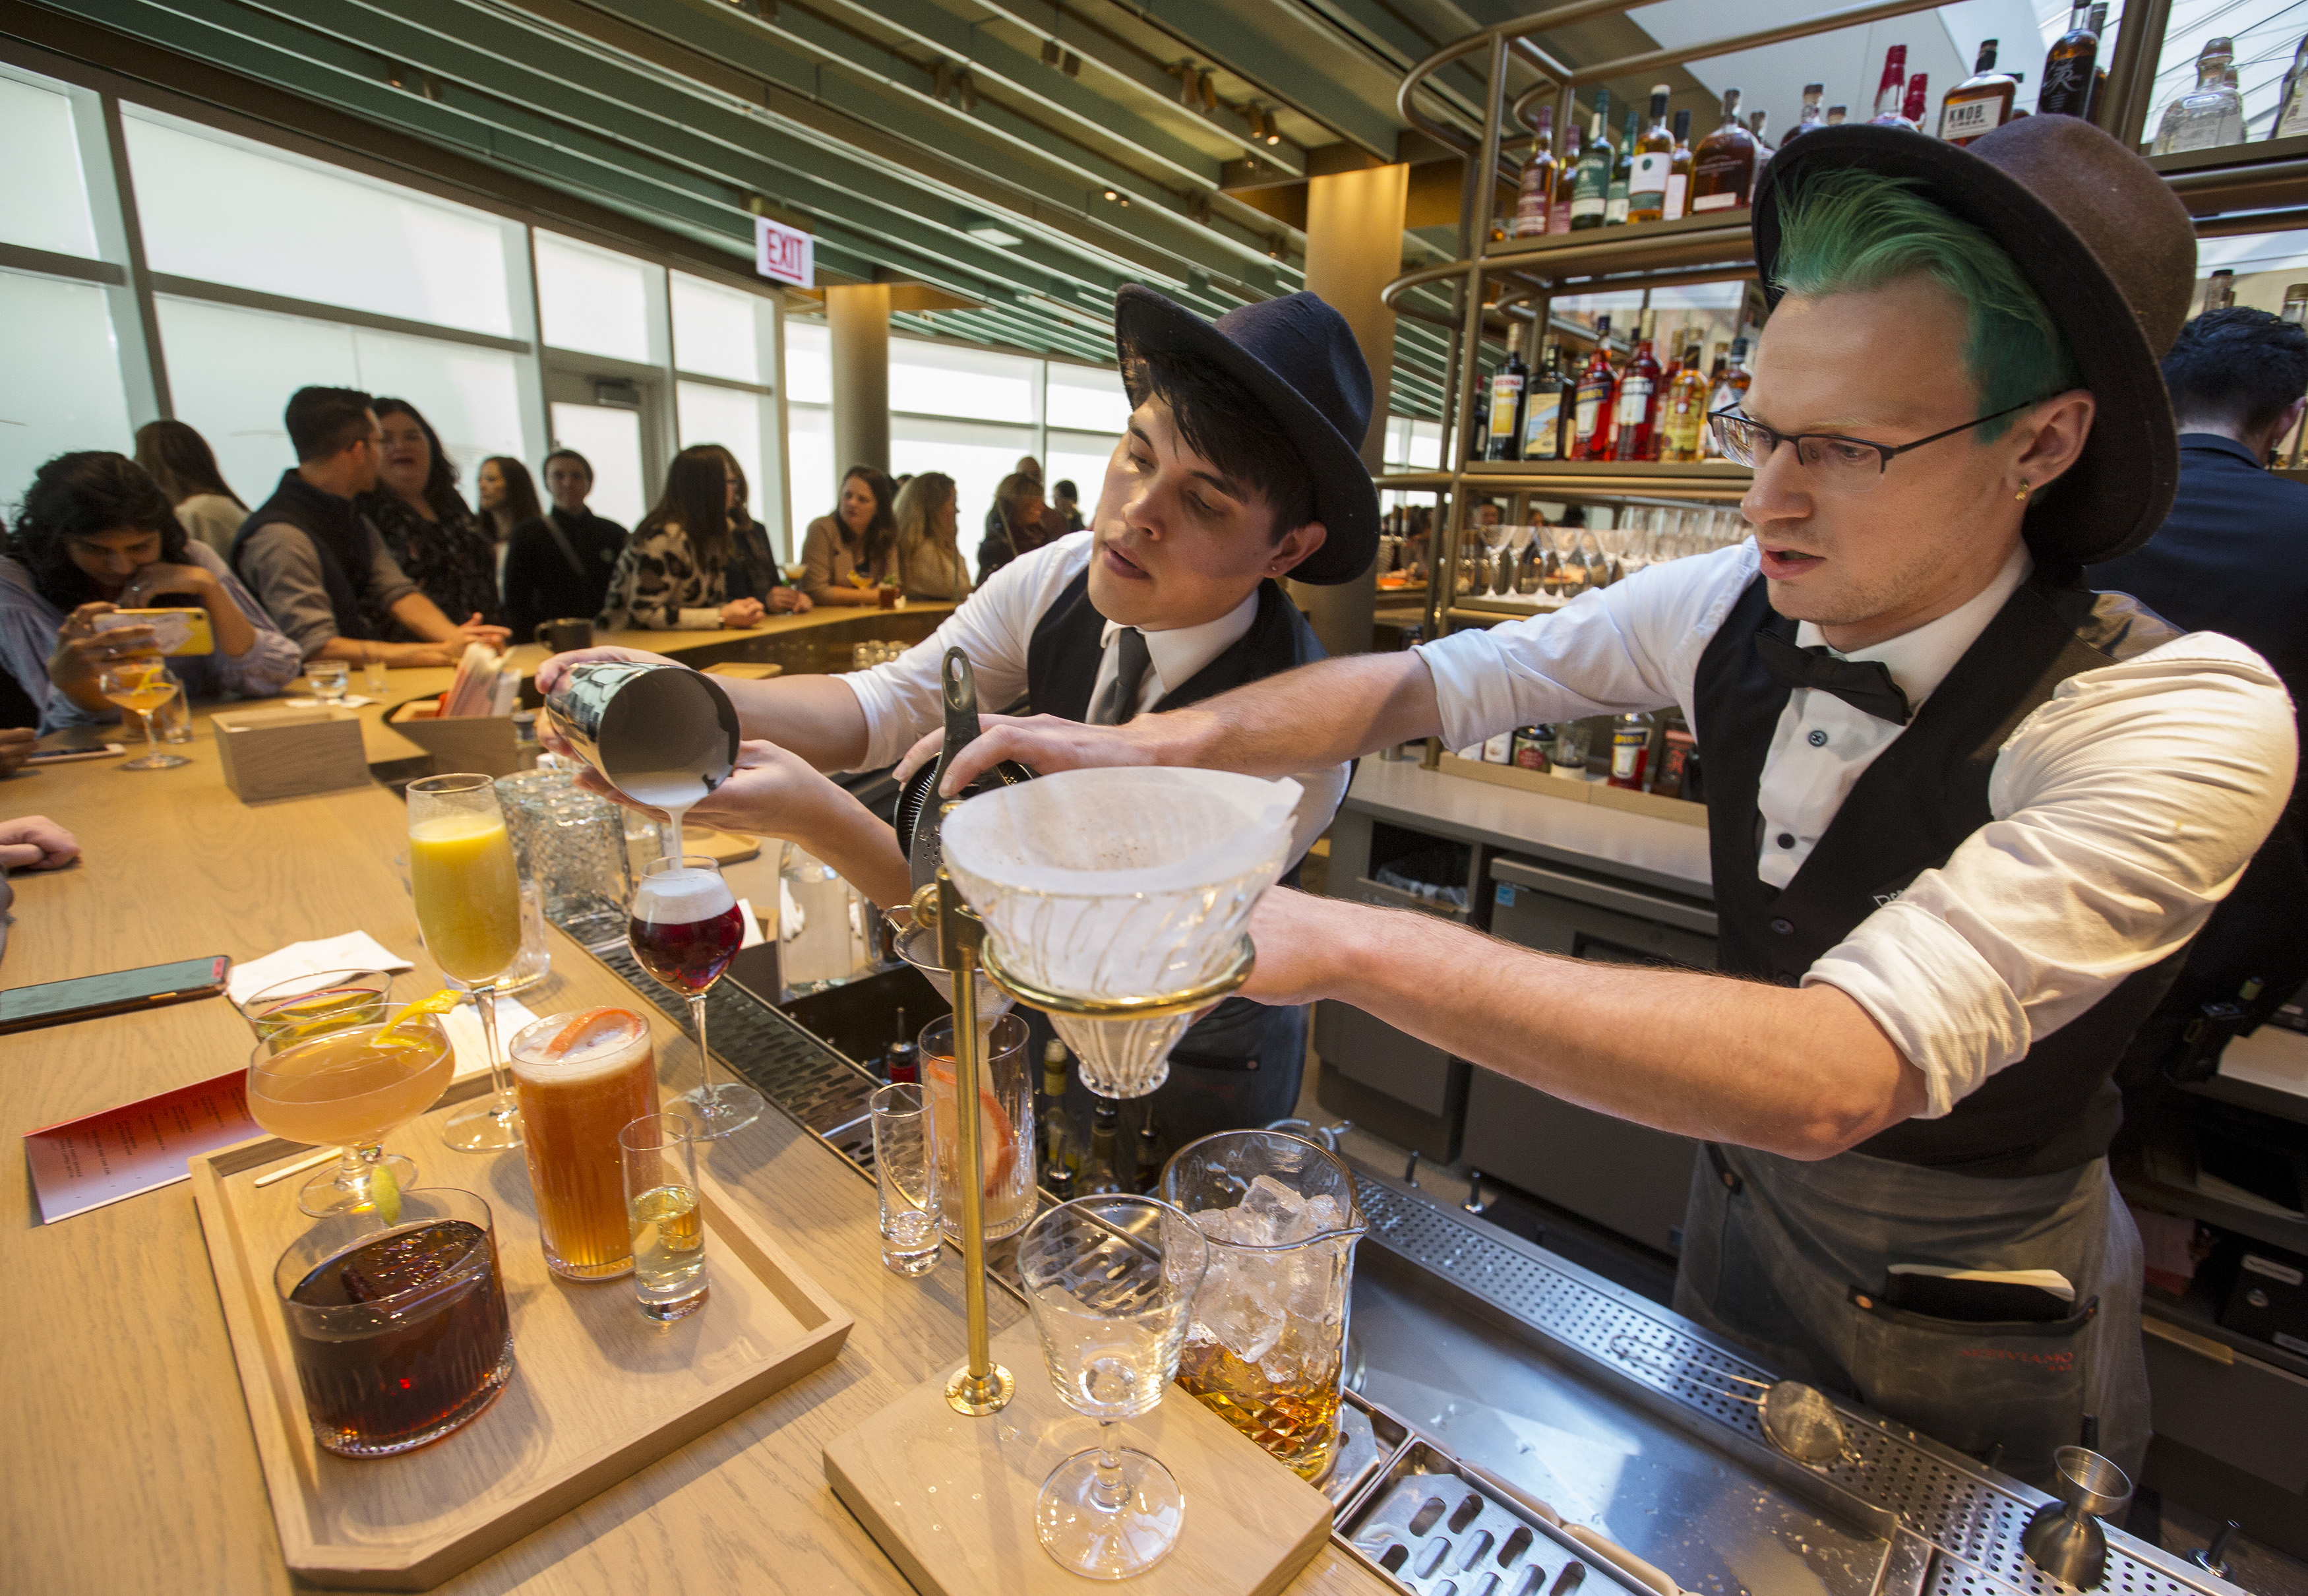 Two bartenders work on drinks behind a bar with diners in the background.